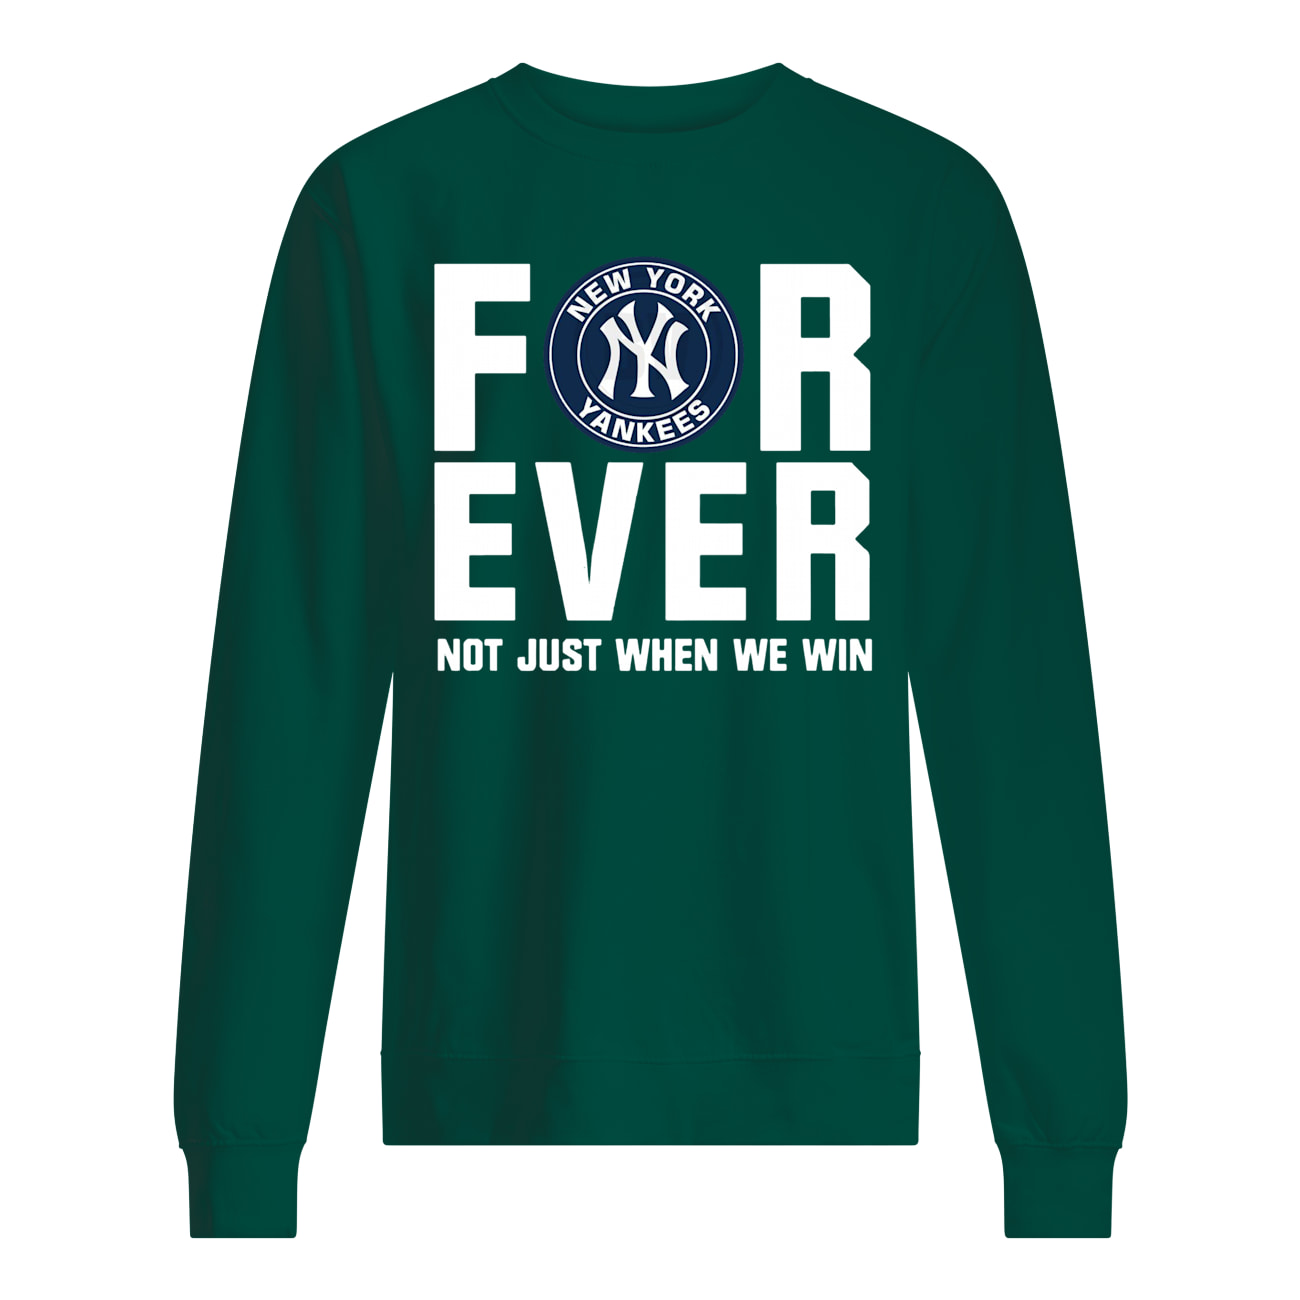 New york yankees forever not just when we win sweatshirt